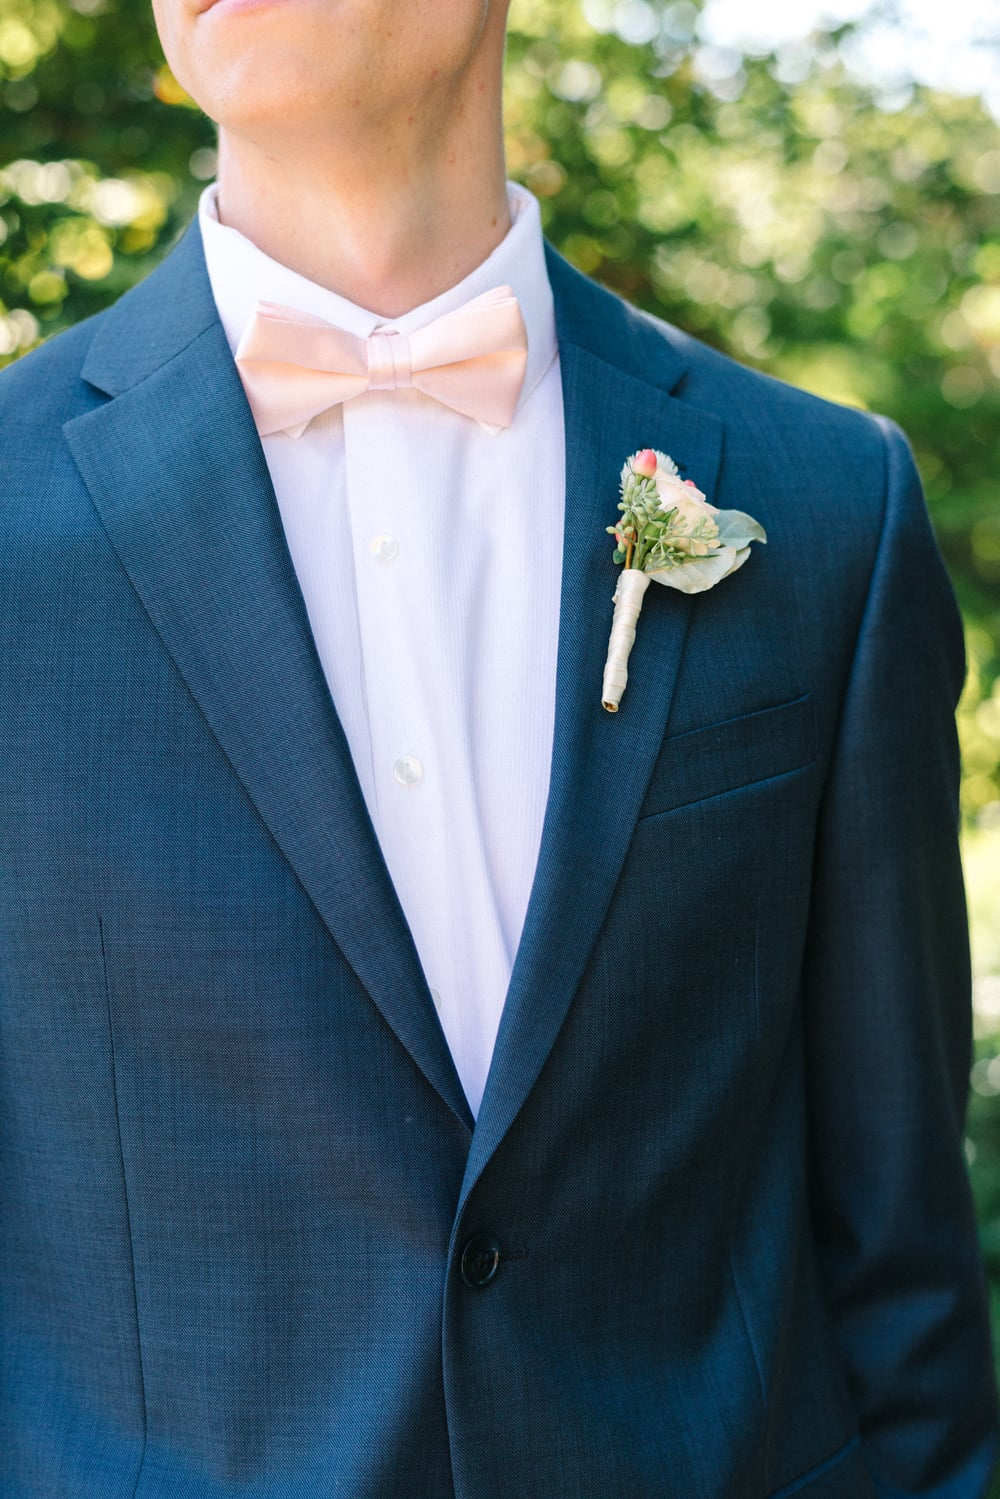 Andrew looked especially dapper in his navy blue suit, and a simple bout of seeded euc, spray rose and berries completed the look.